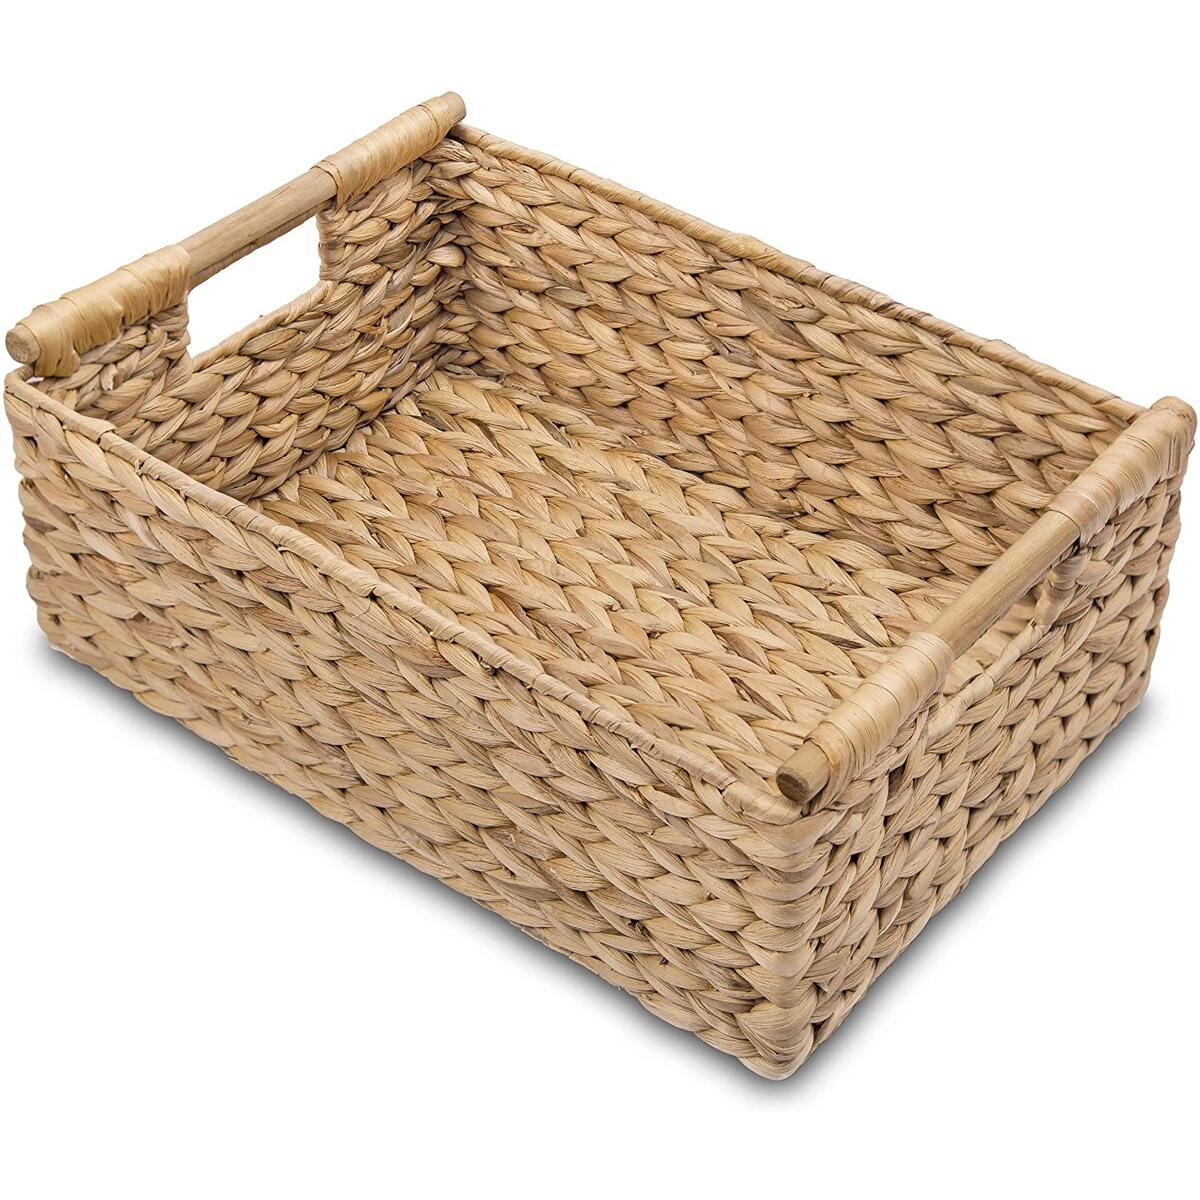 LARGE Wicker Basket with Wooden Handles for Shelves, Water Hyacinth Storage Basket, Natural Baskets for Organizing, Wicker Baskets for Storage 15 x 10.6 x 5.5 inches